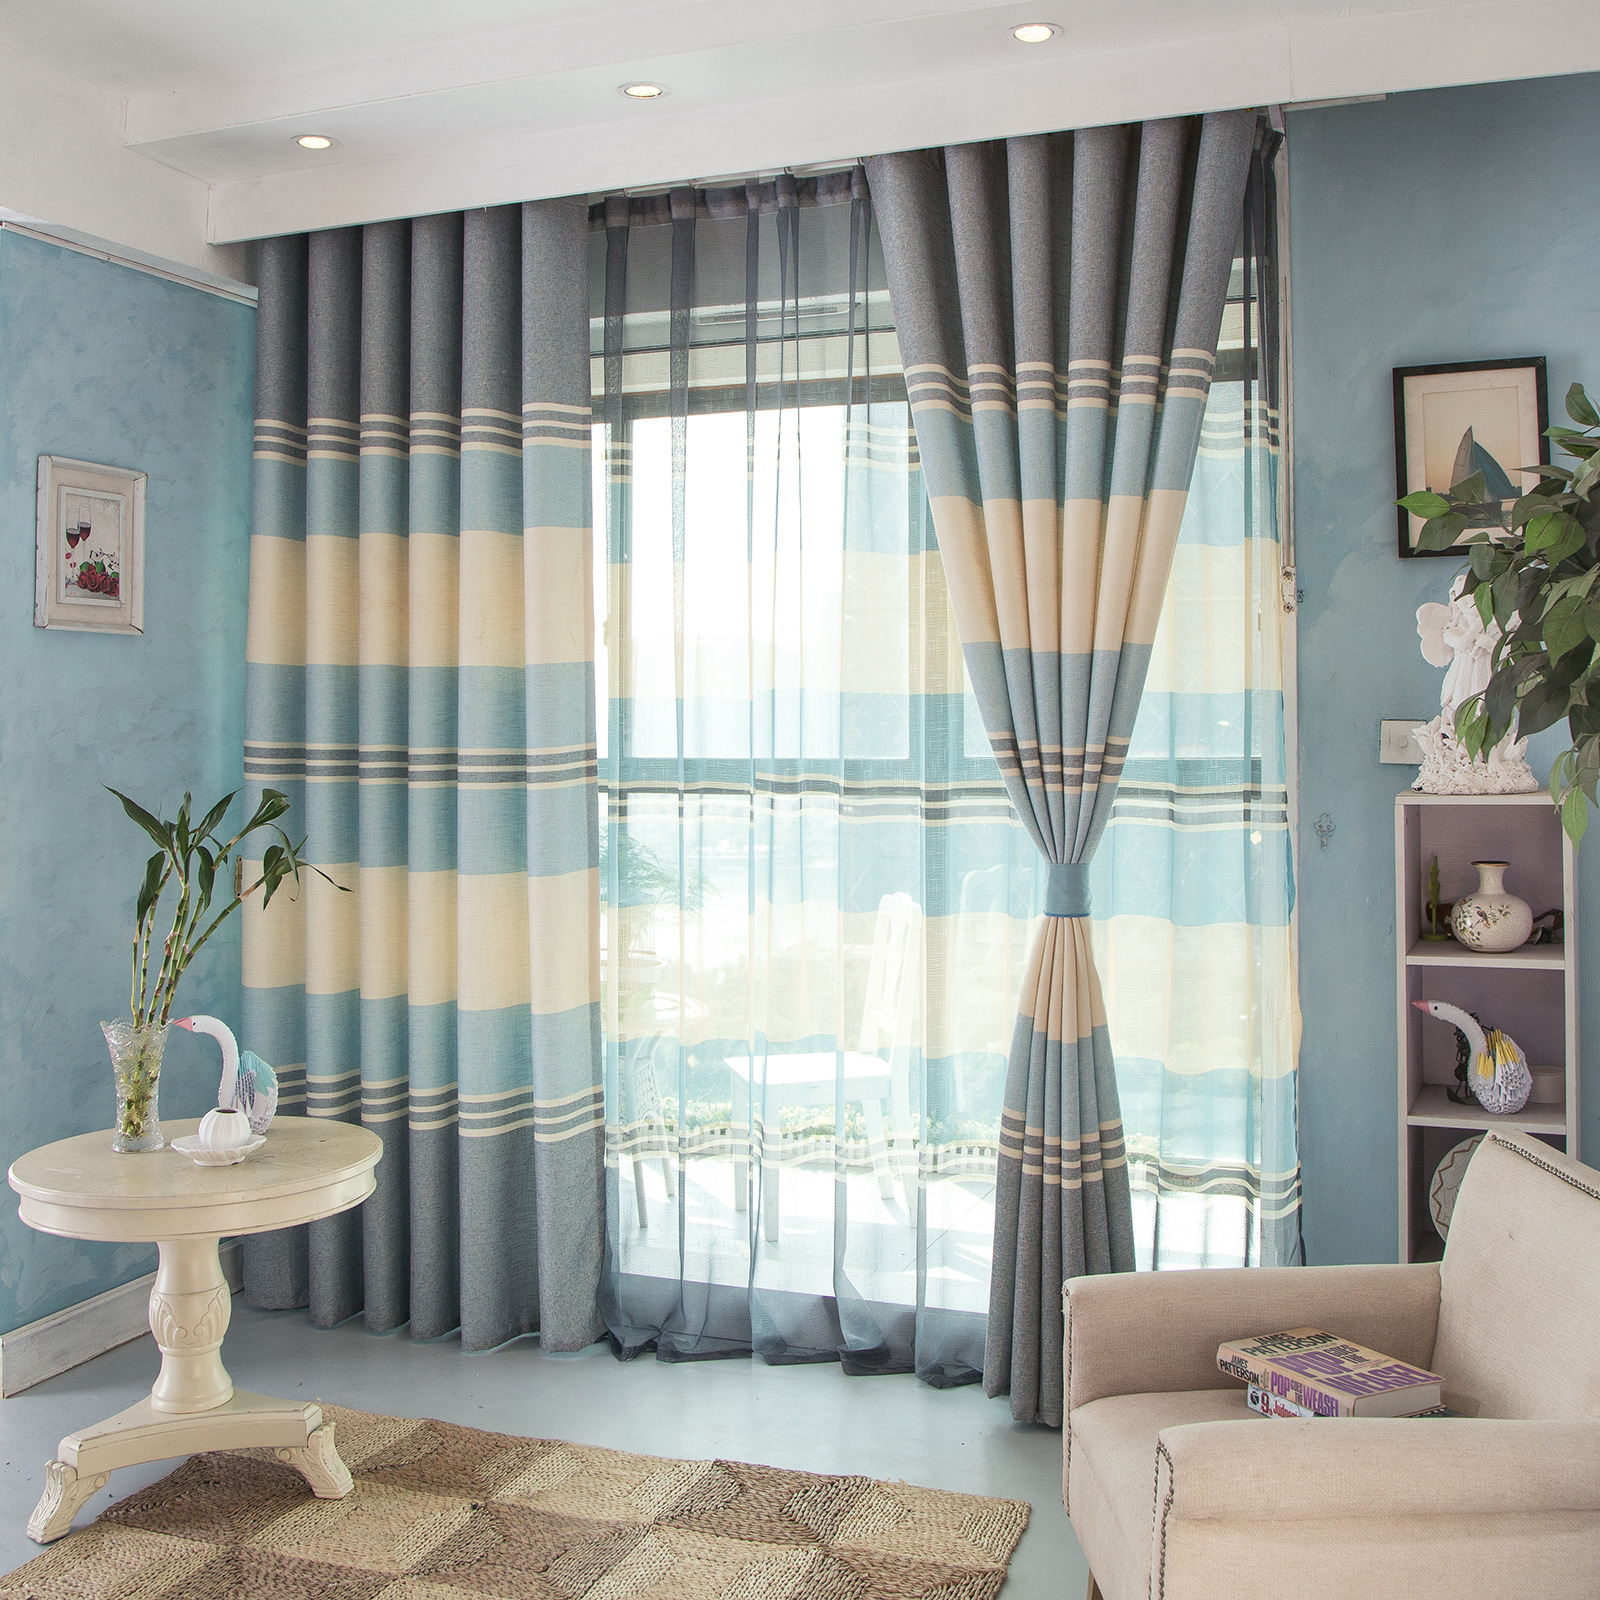 Marilyn Monroe Bedroom Curtains Online Get Cheap Curtain Cloth Design Aliexpresscom Alibaba Group